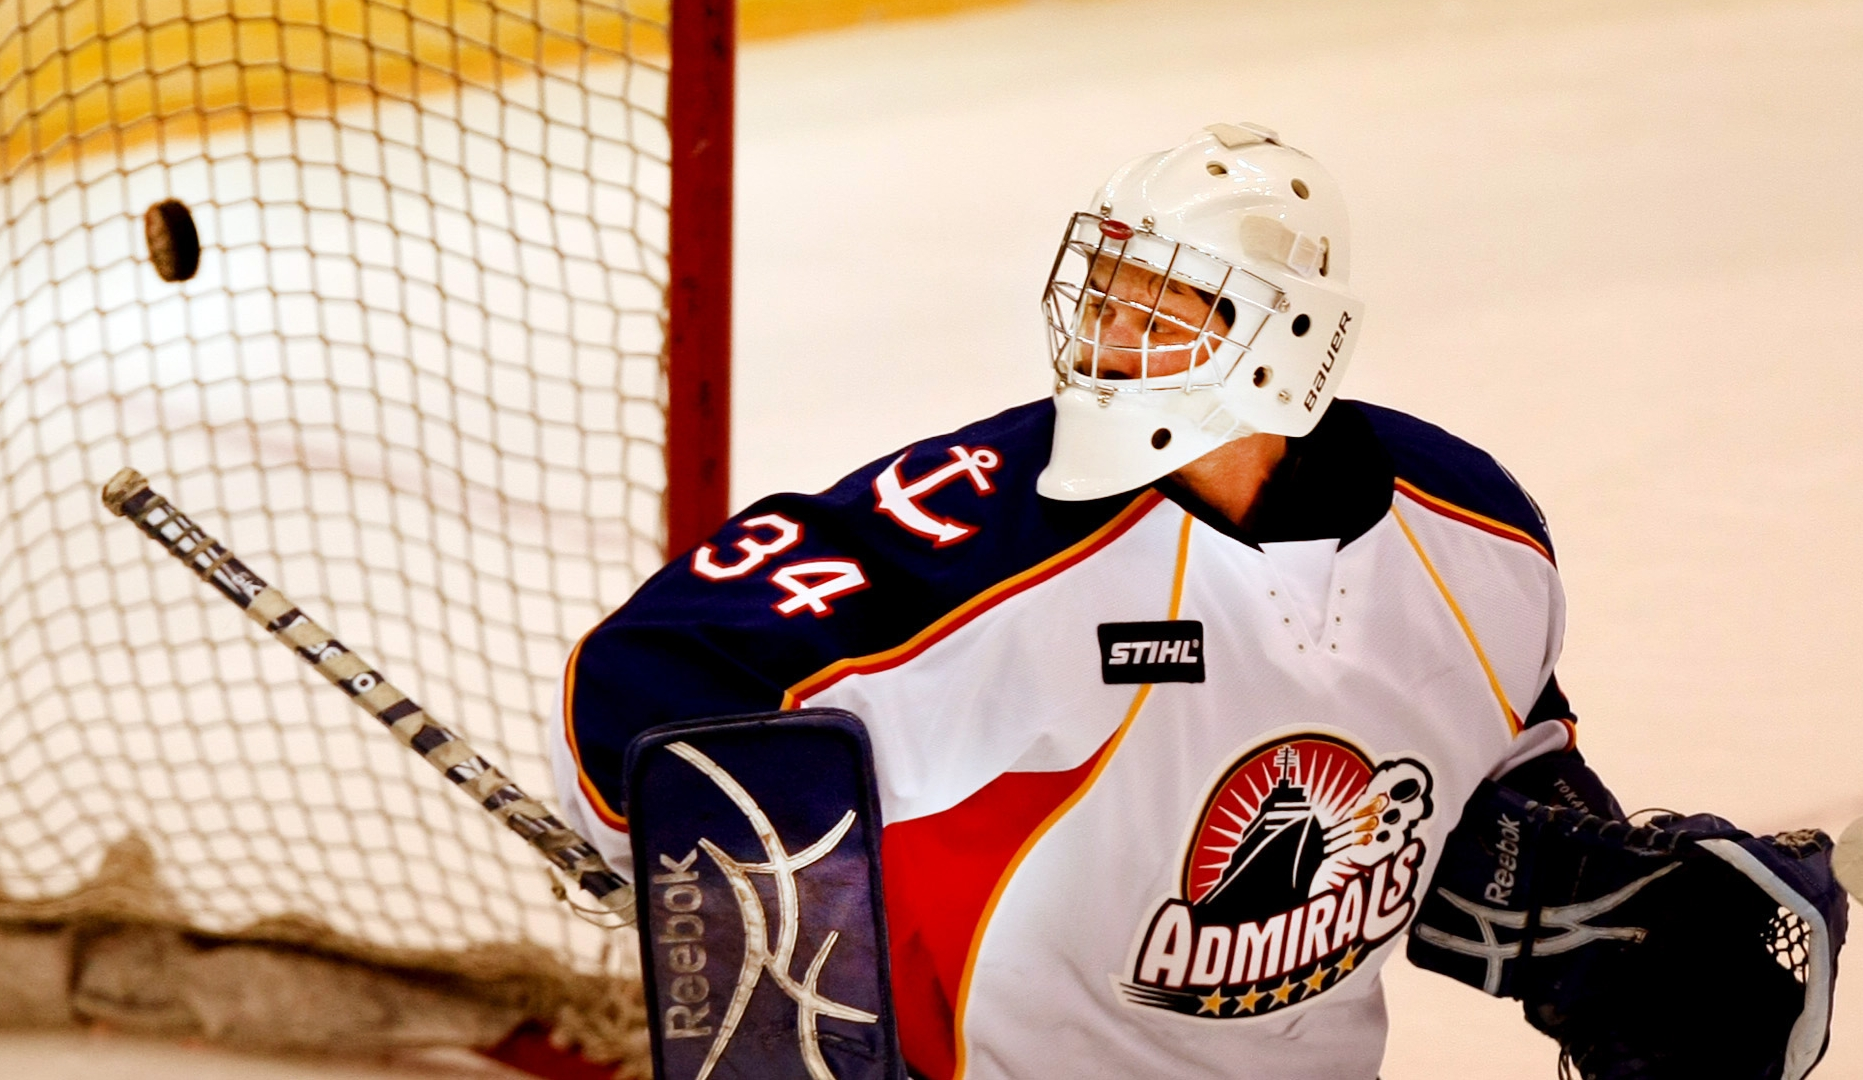 Admirals goalie Dustin Tokarski watches the puck go into net for a Wilkes-Barre/Scranton goal to tie the game at two at Scope in Norfolk.